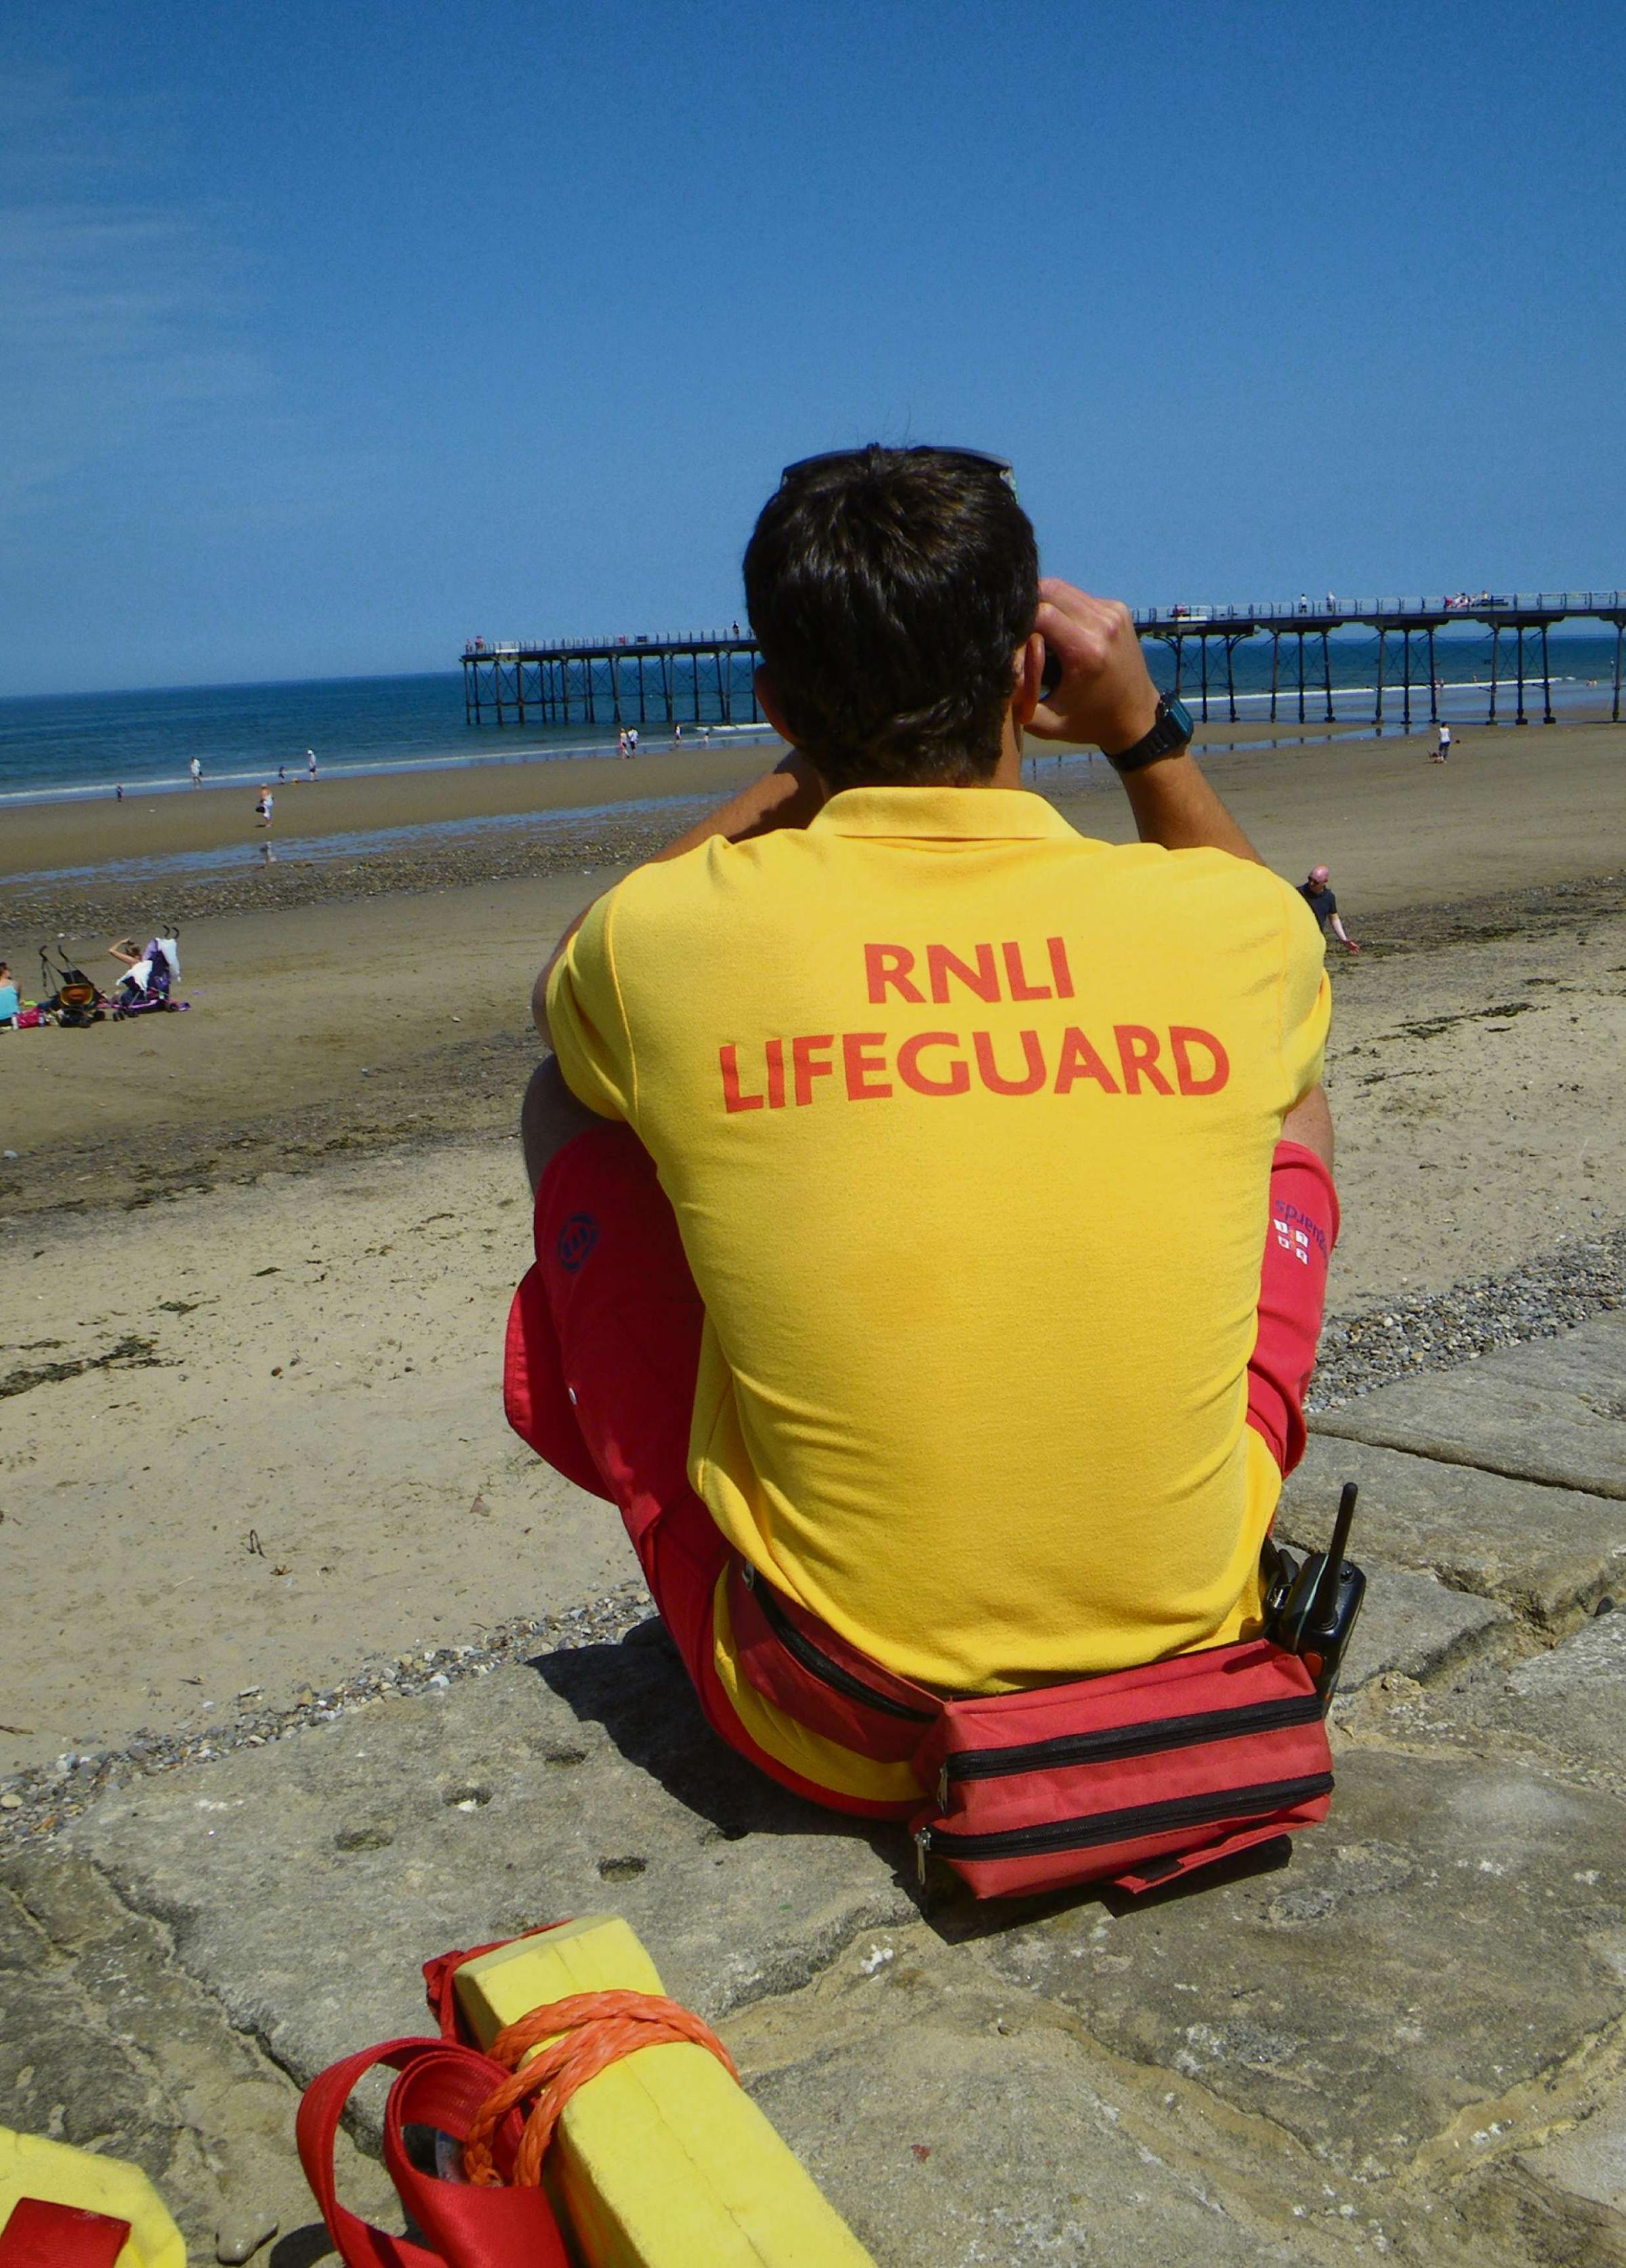 A lifeguard on duty at Saltburn last year